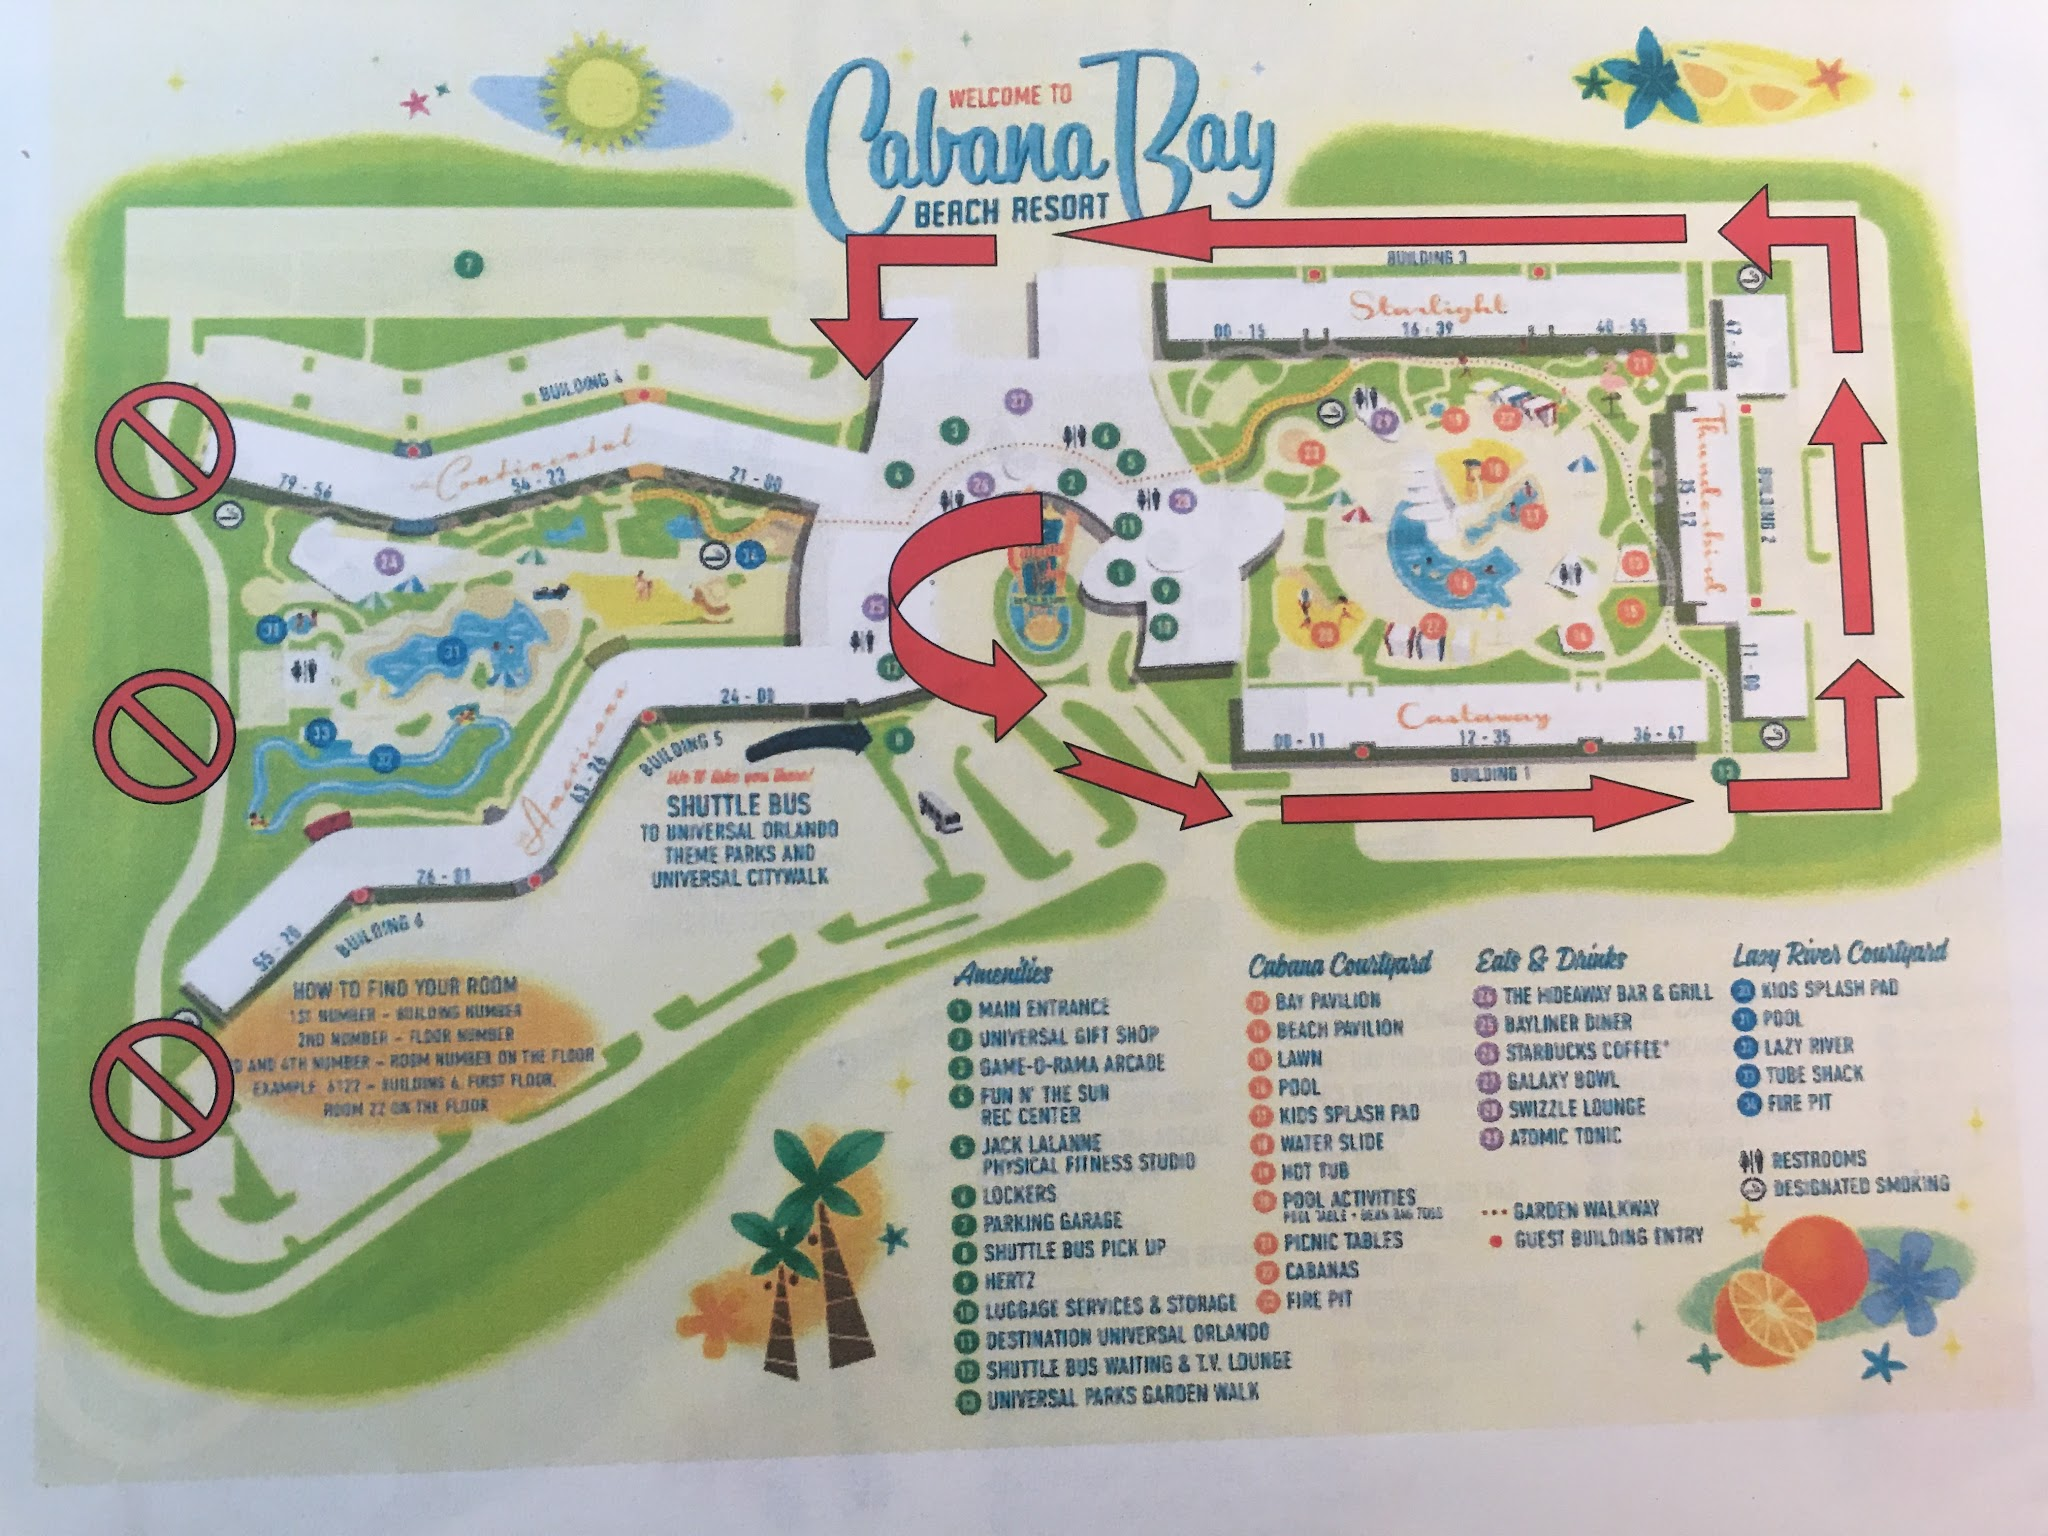 Seth Kubersky S Best Week Ever December 24 2017 Universal Orlando Star Wars Staycation At Cabana Bay Touringplans Blog